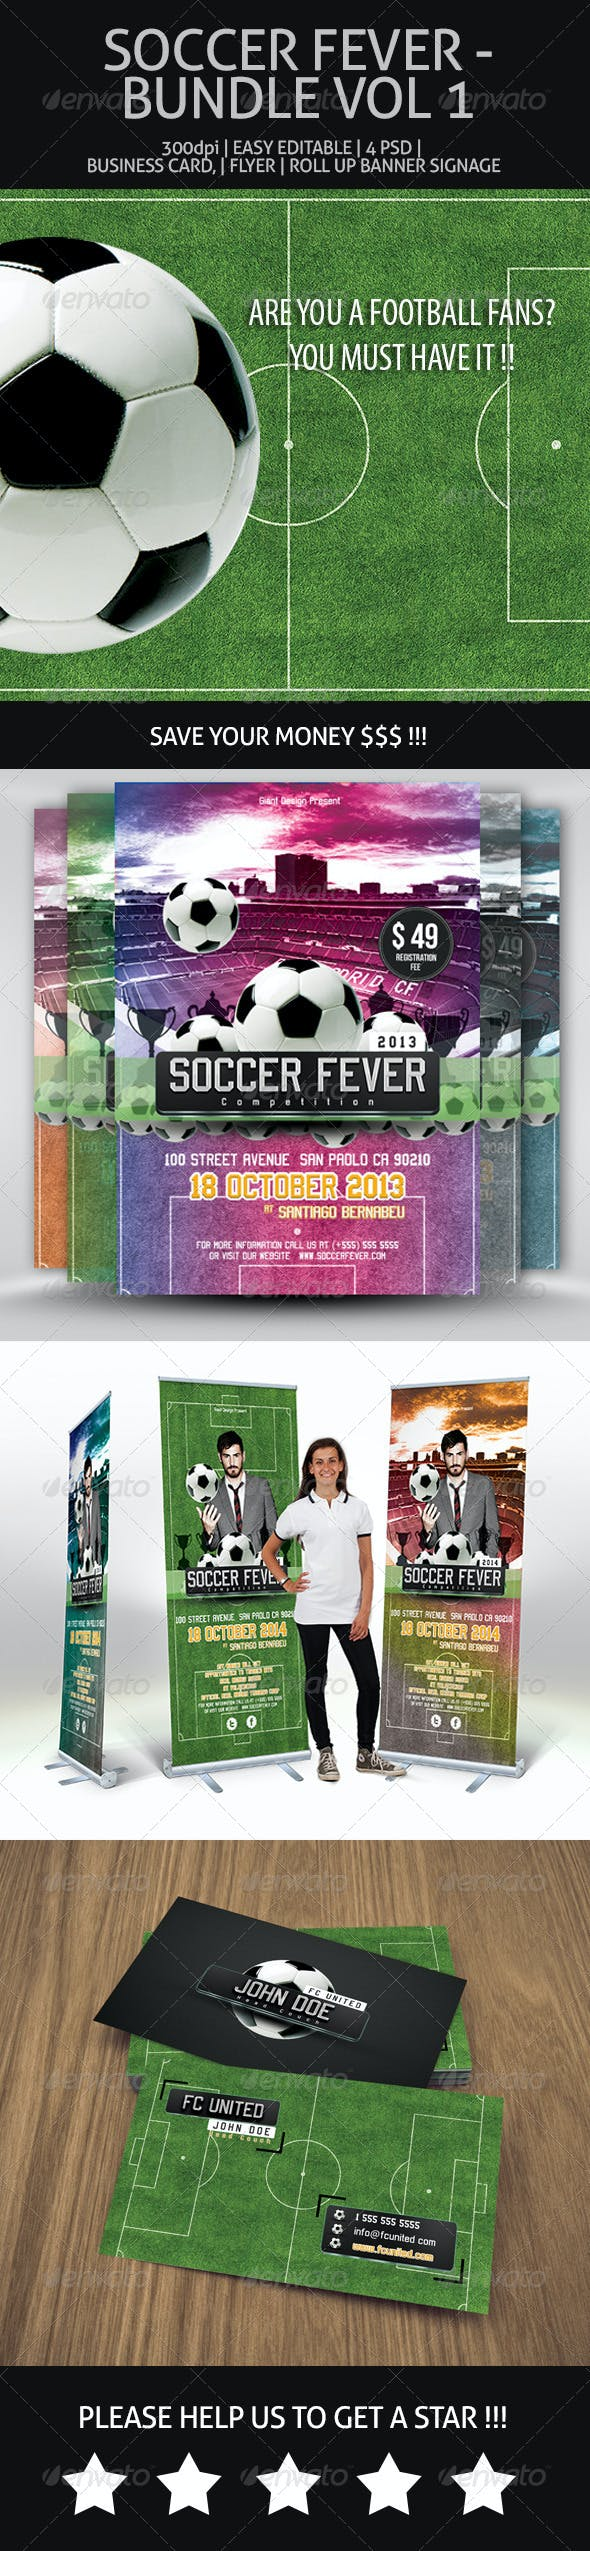 Soccer Fever - Bundle Vol 1